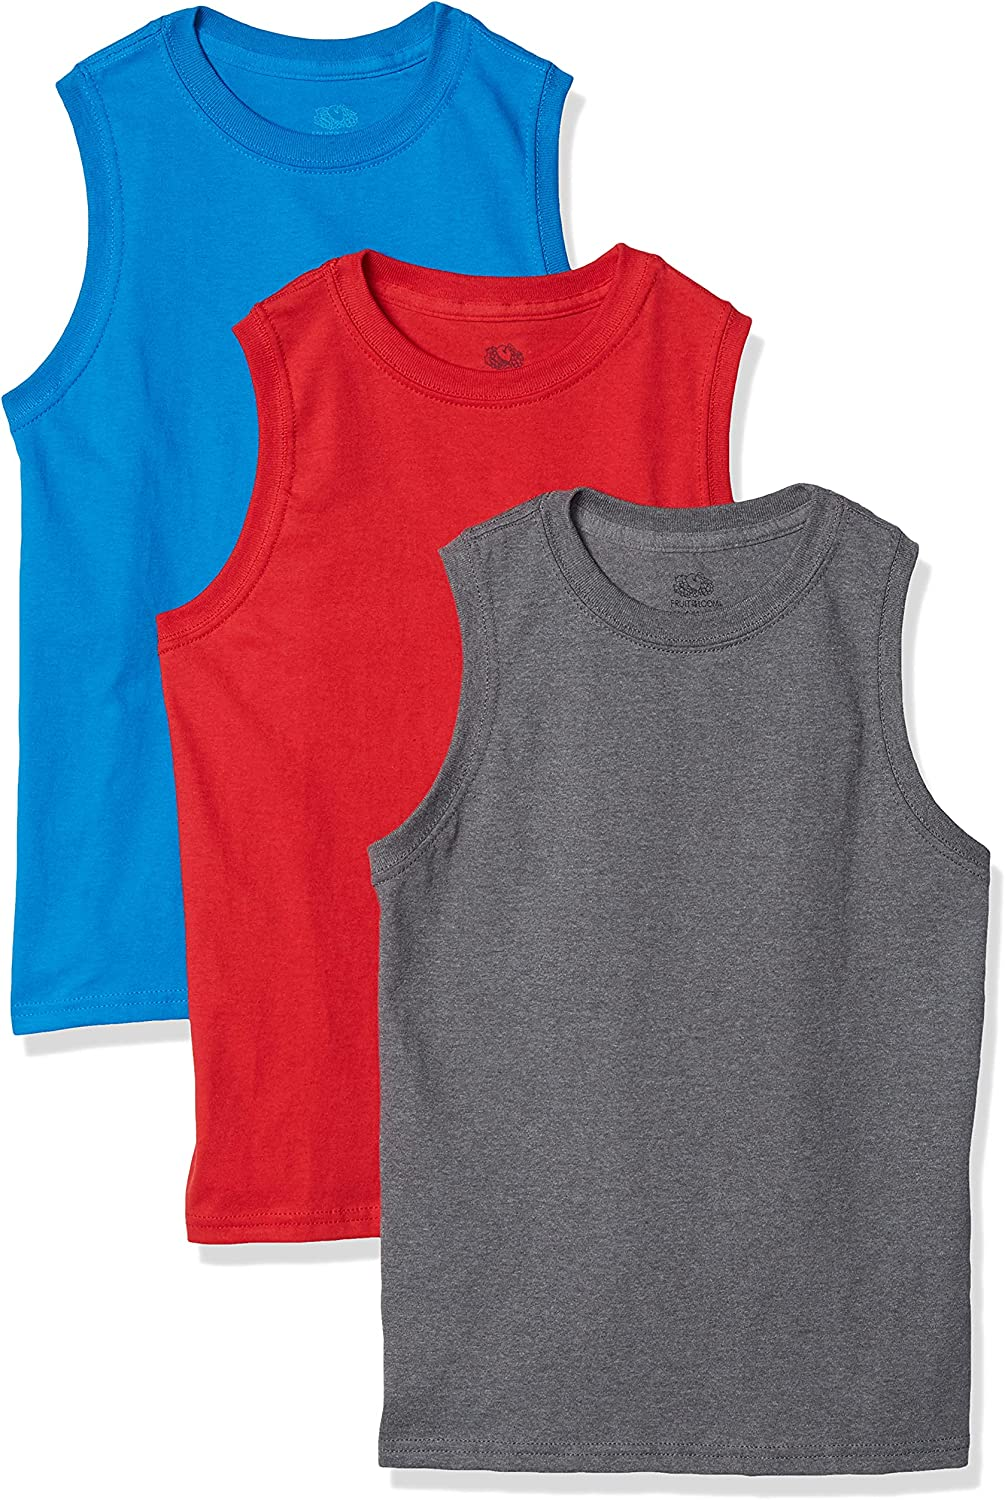 Fruit of the Loom Boys' Tag-Free Cotton Tees (Assorted Color Multipacks)